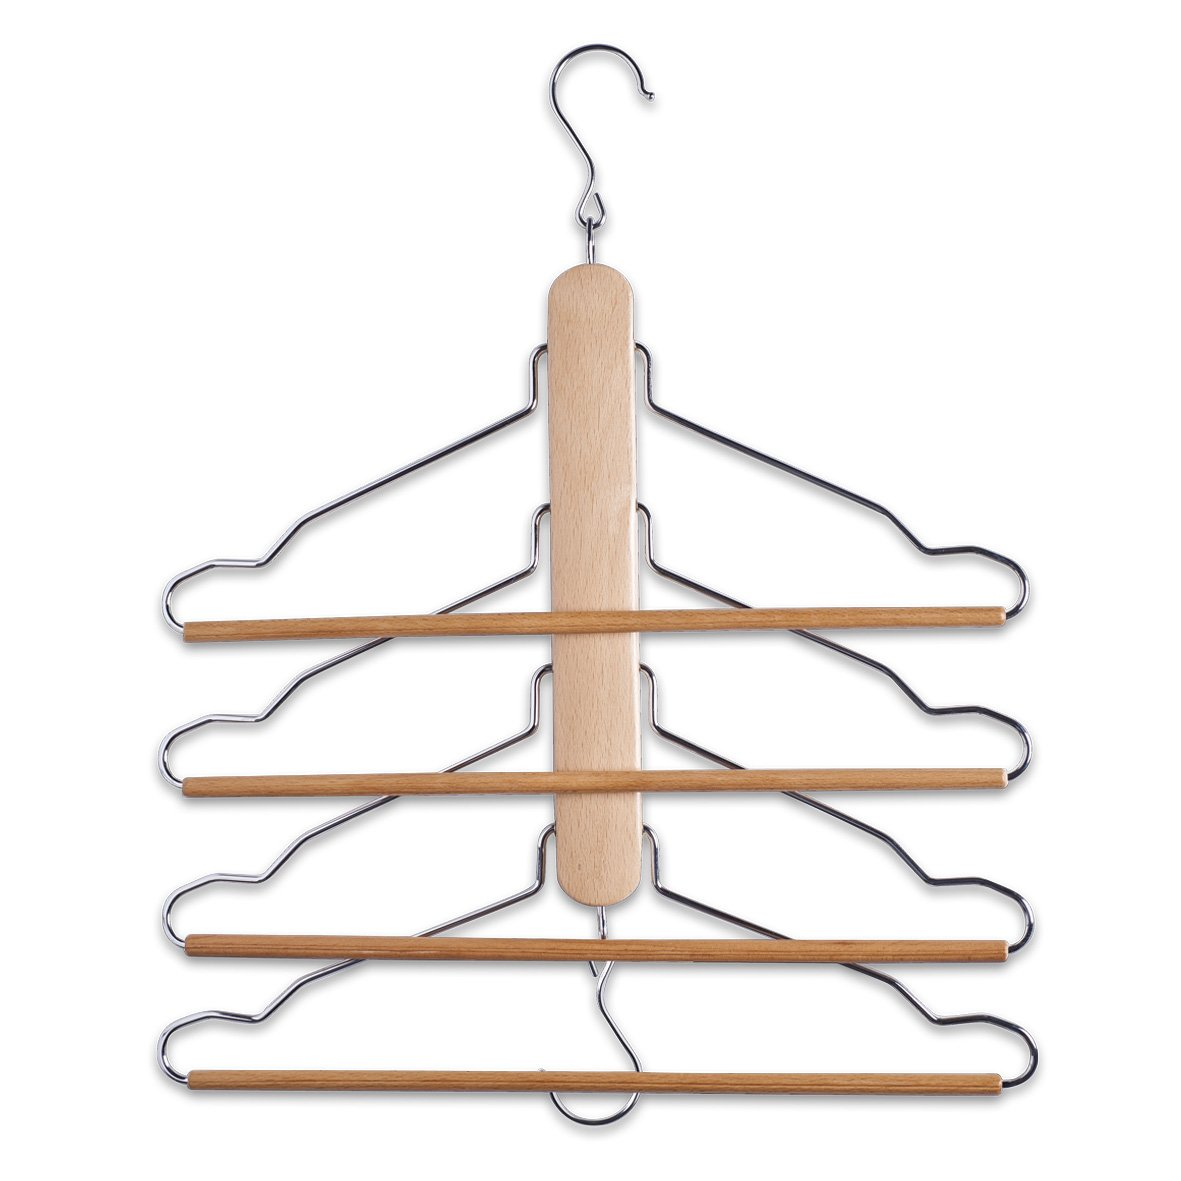 Zeller Clothes Hanger, Wood, Multi-Colour, 40 x 41 cm: Amazon.co.uk:  Kitchen & Home